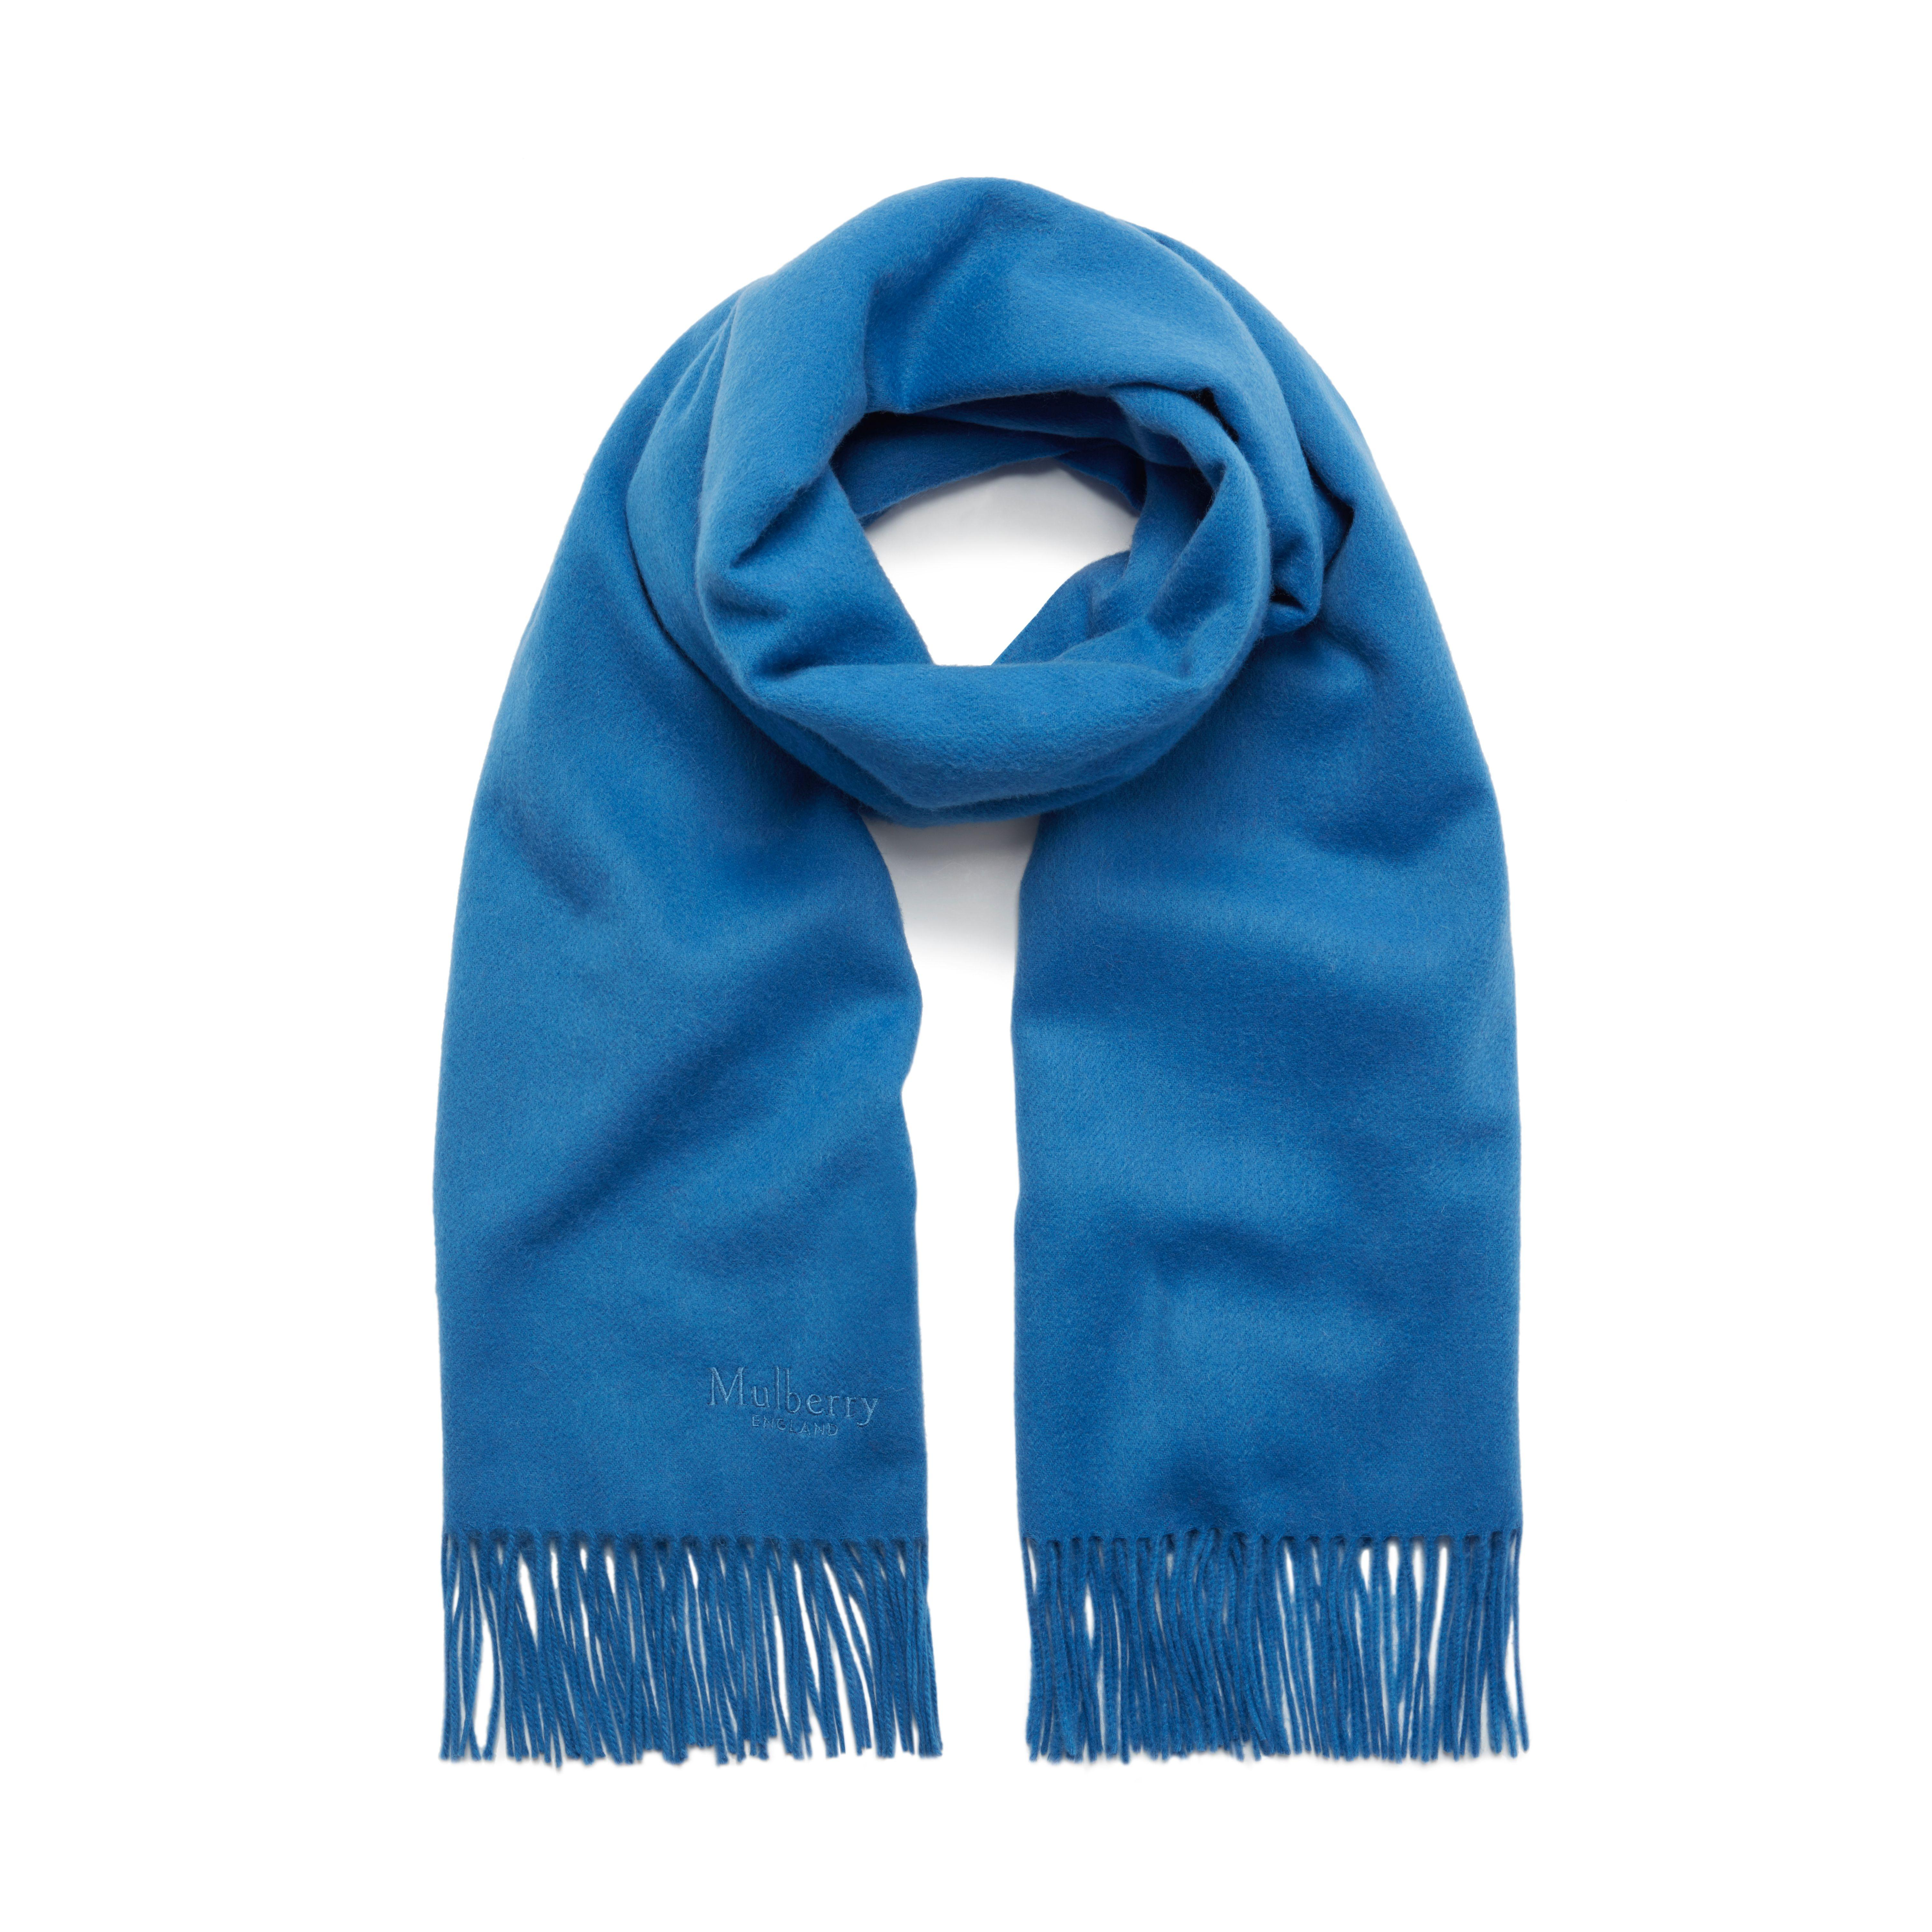 a4db7bc67 Mulberry Lambswool Scarf in Blue - Lyst